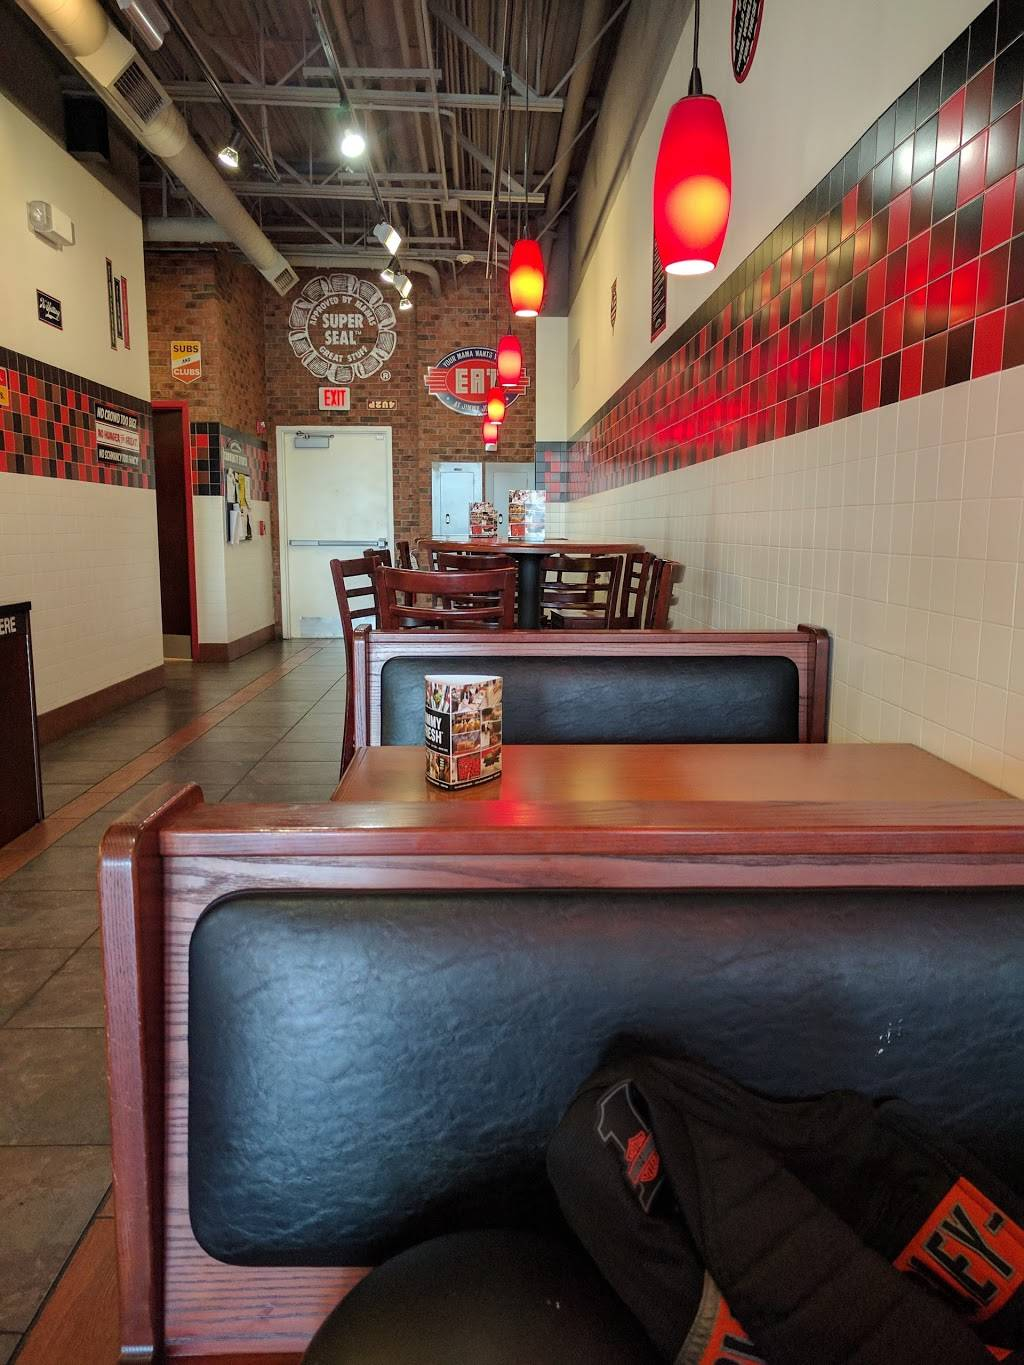 Jimmy Johns | meal delivery | 7444 Kingery Hwy, Willowbrook, IL 60527, USA | 6309201210 OR +1 630-920-1210